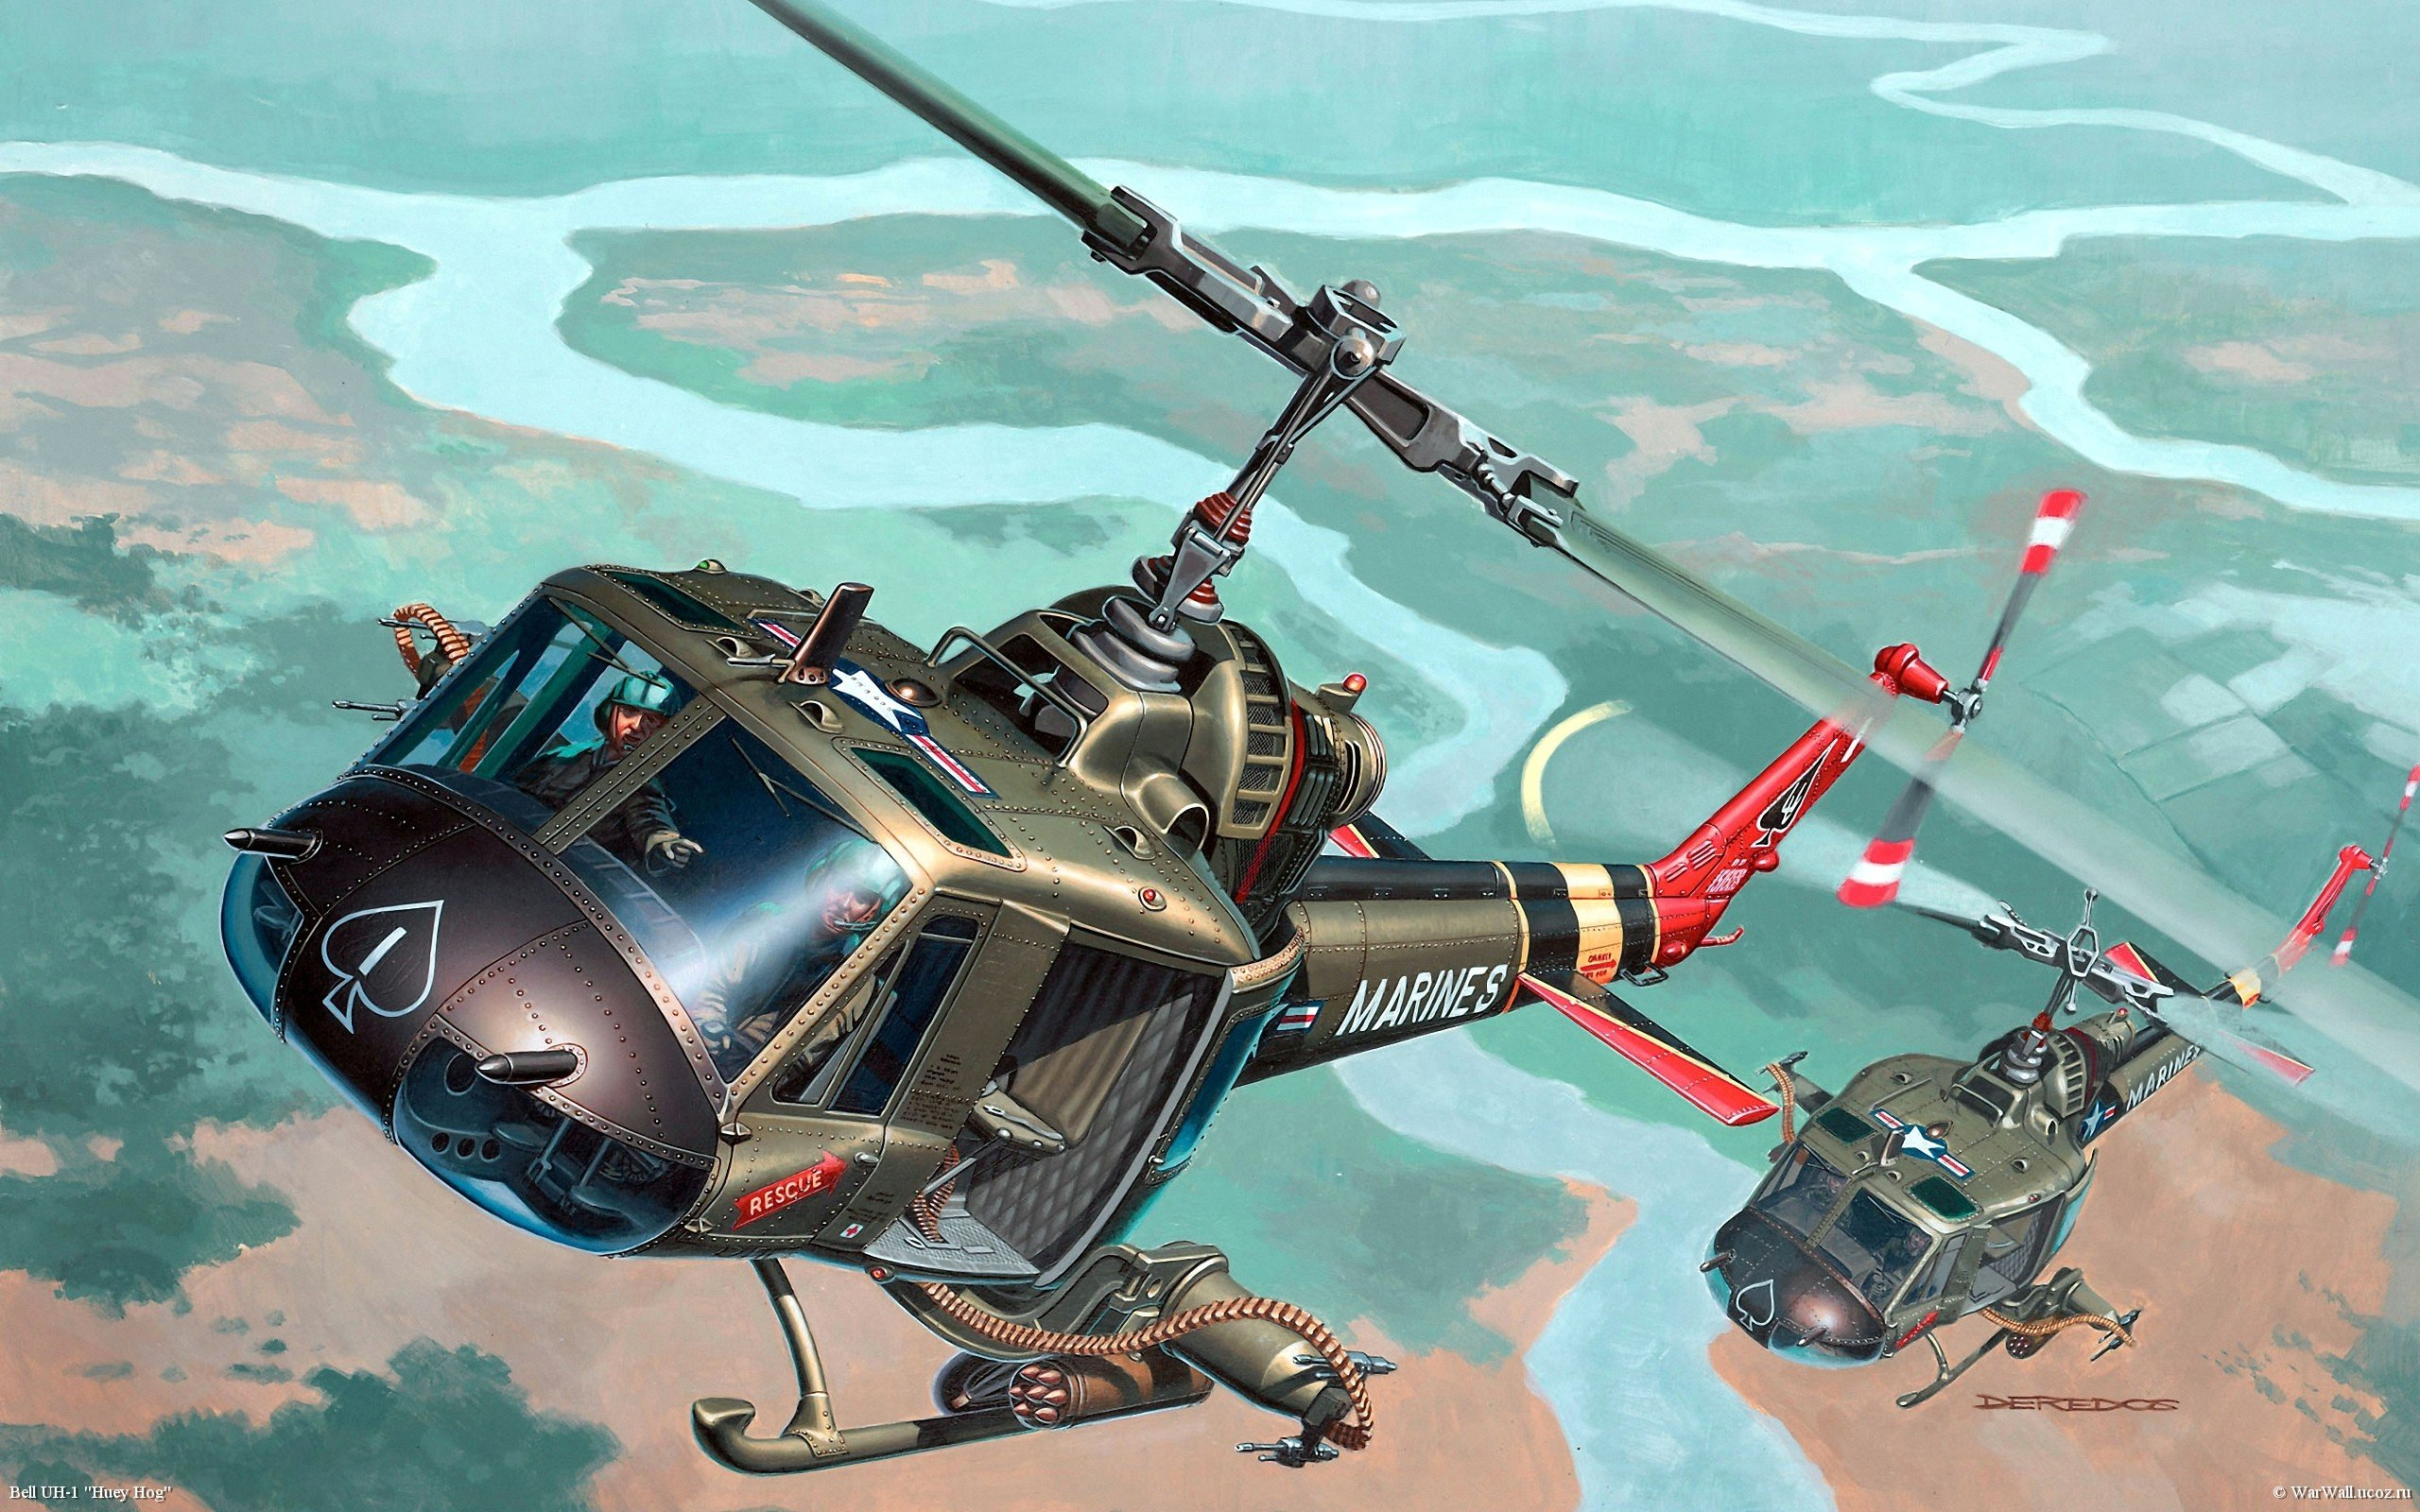 uh 1d helicopter with Aircraft Military Helicopters Artwork Vehicles Rivers Military Art on 35th Anniversary Of The Fall Of Saigon 5 moreover 71689 Bell Uh 1d Huey Bundeswehr in addition Kit dml 3538 moreover 678 in addition Index.